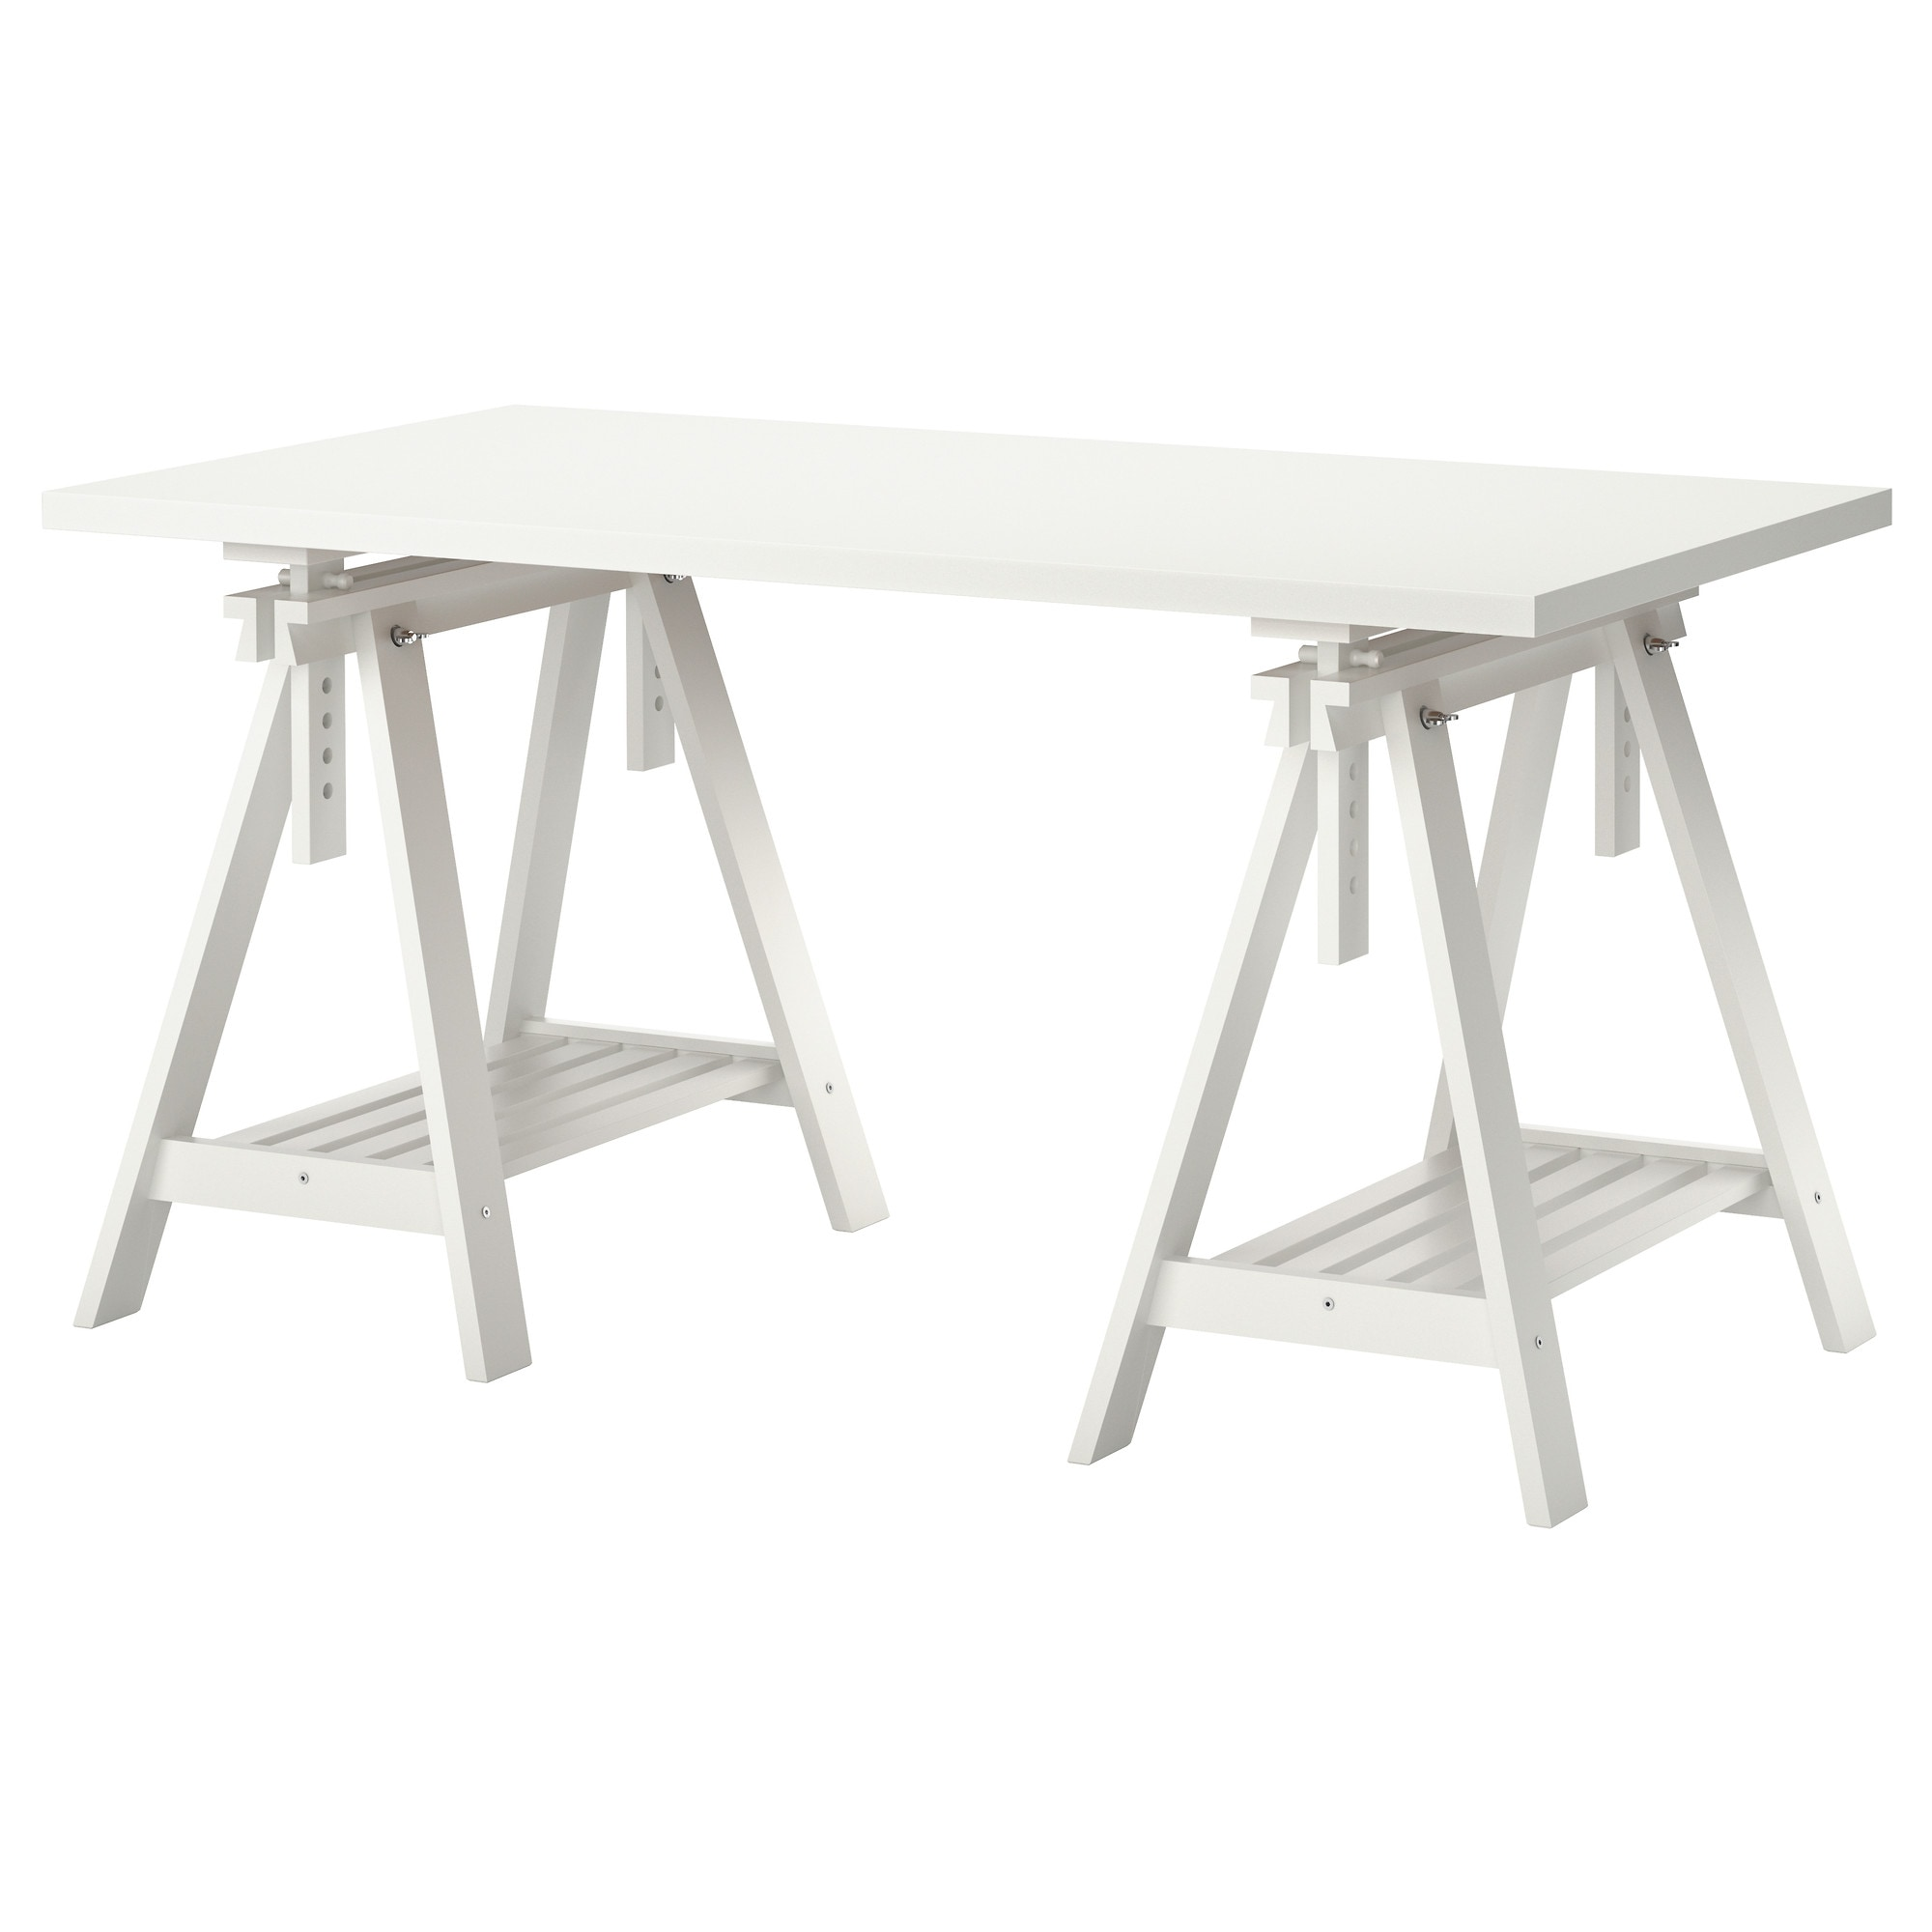 glass table legs and linnmon canada round everythingbeauty ikea uk info tops